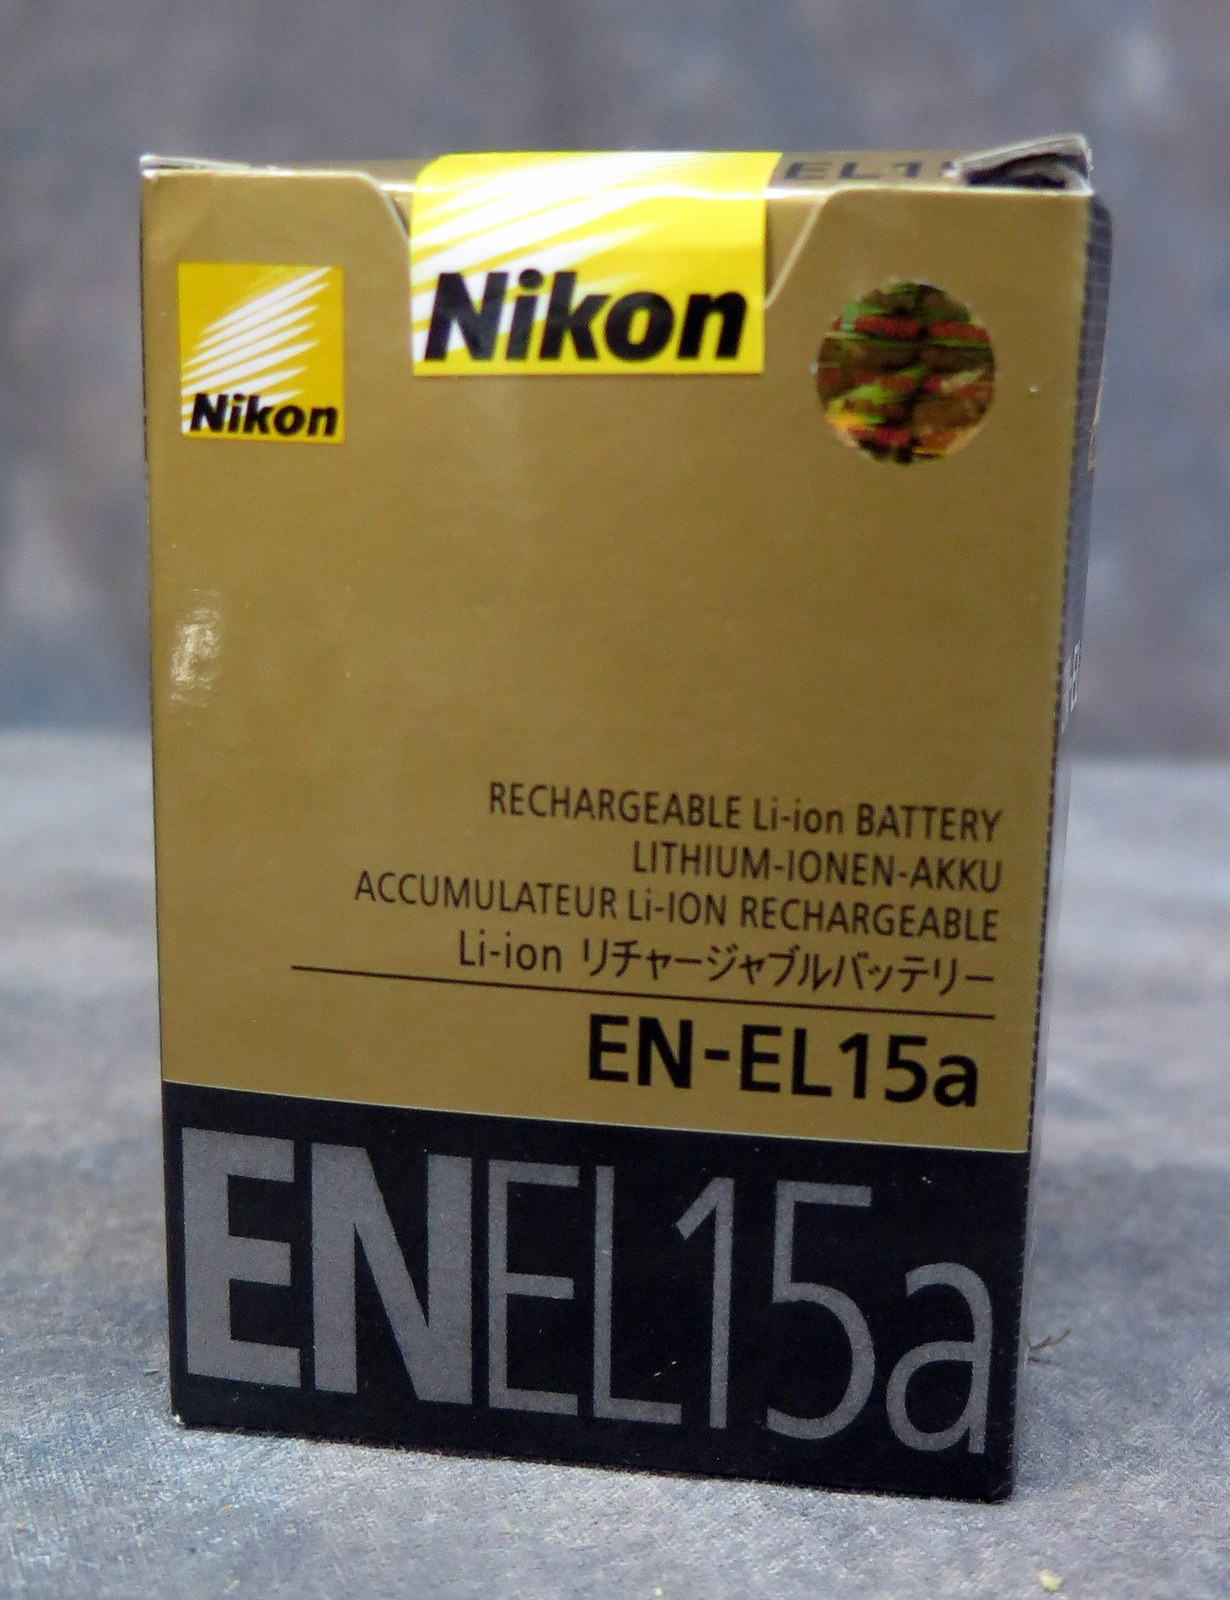 Primary image for NEW EN-EL15a Battery Rechargeable for Nikon D850 D600 D610 D750 D7100 D7200 D800